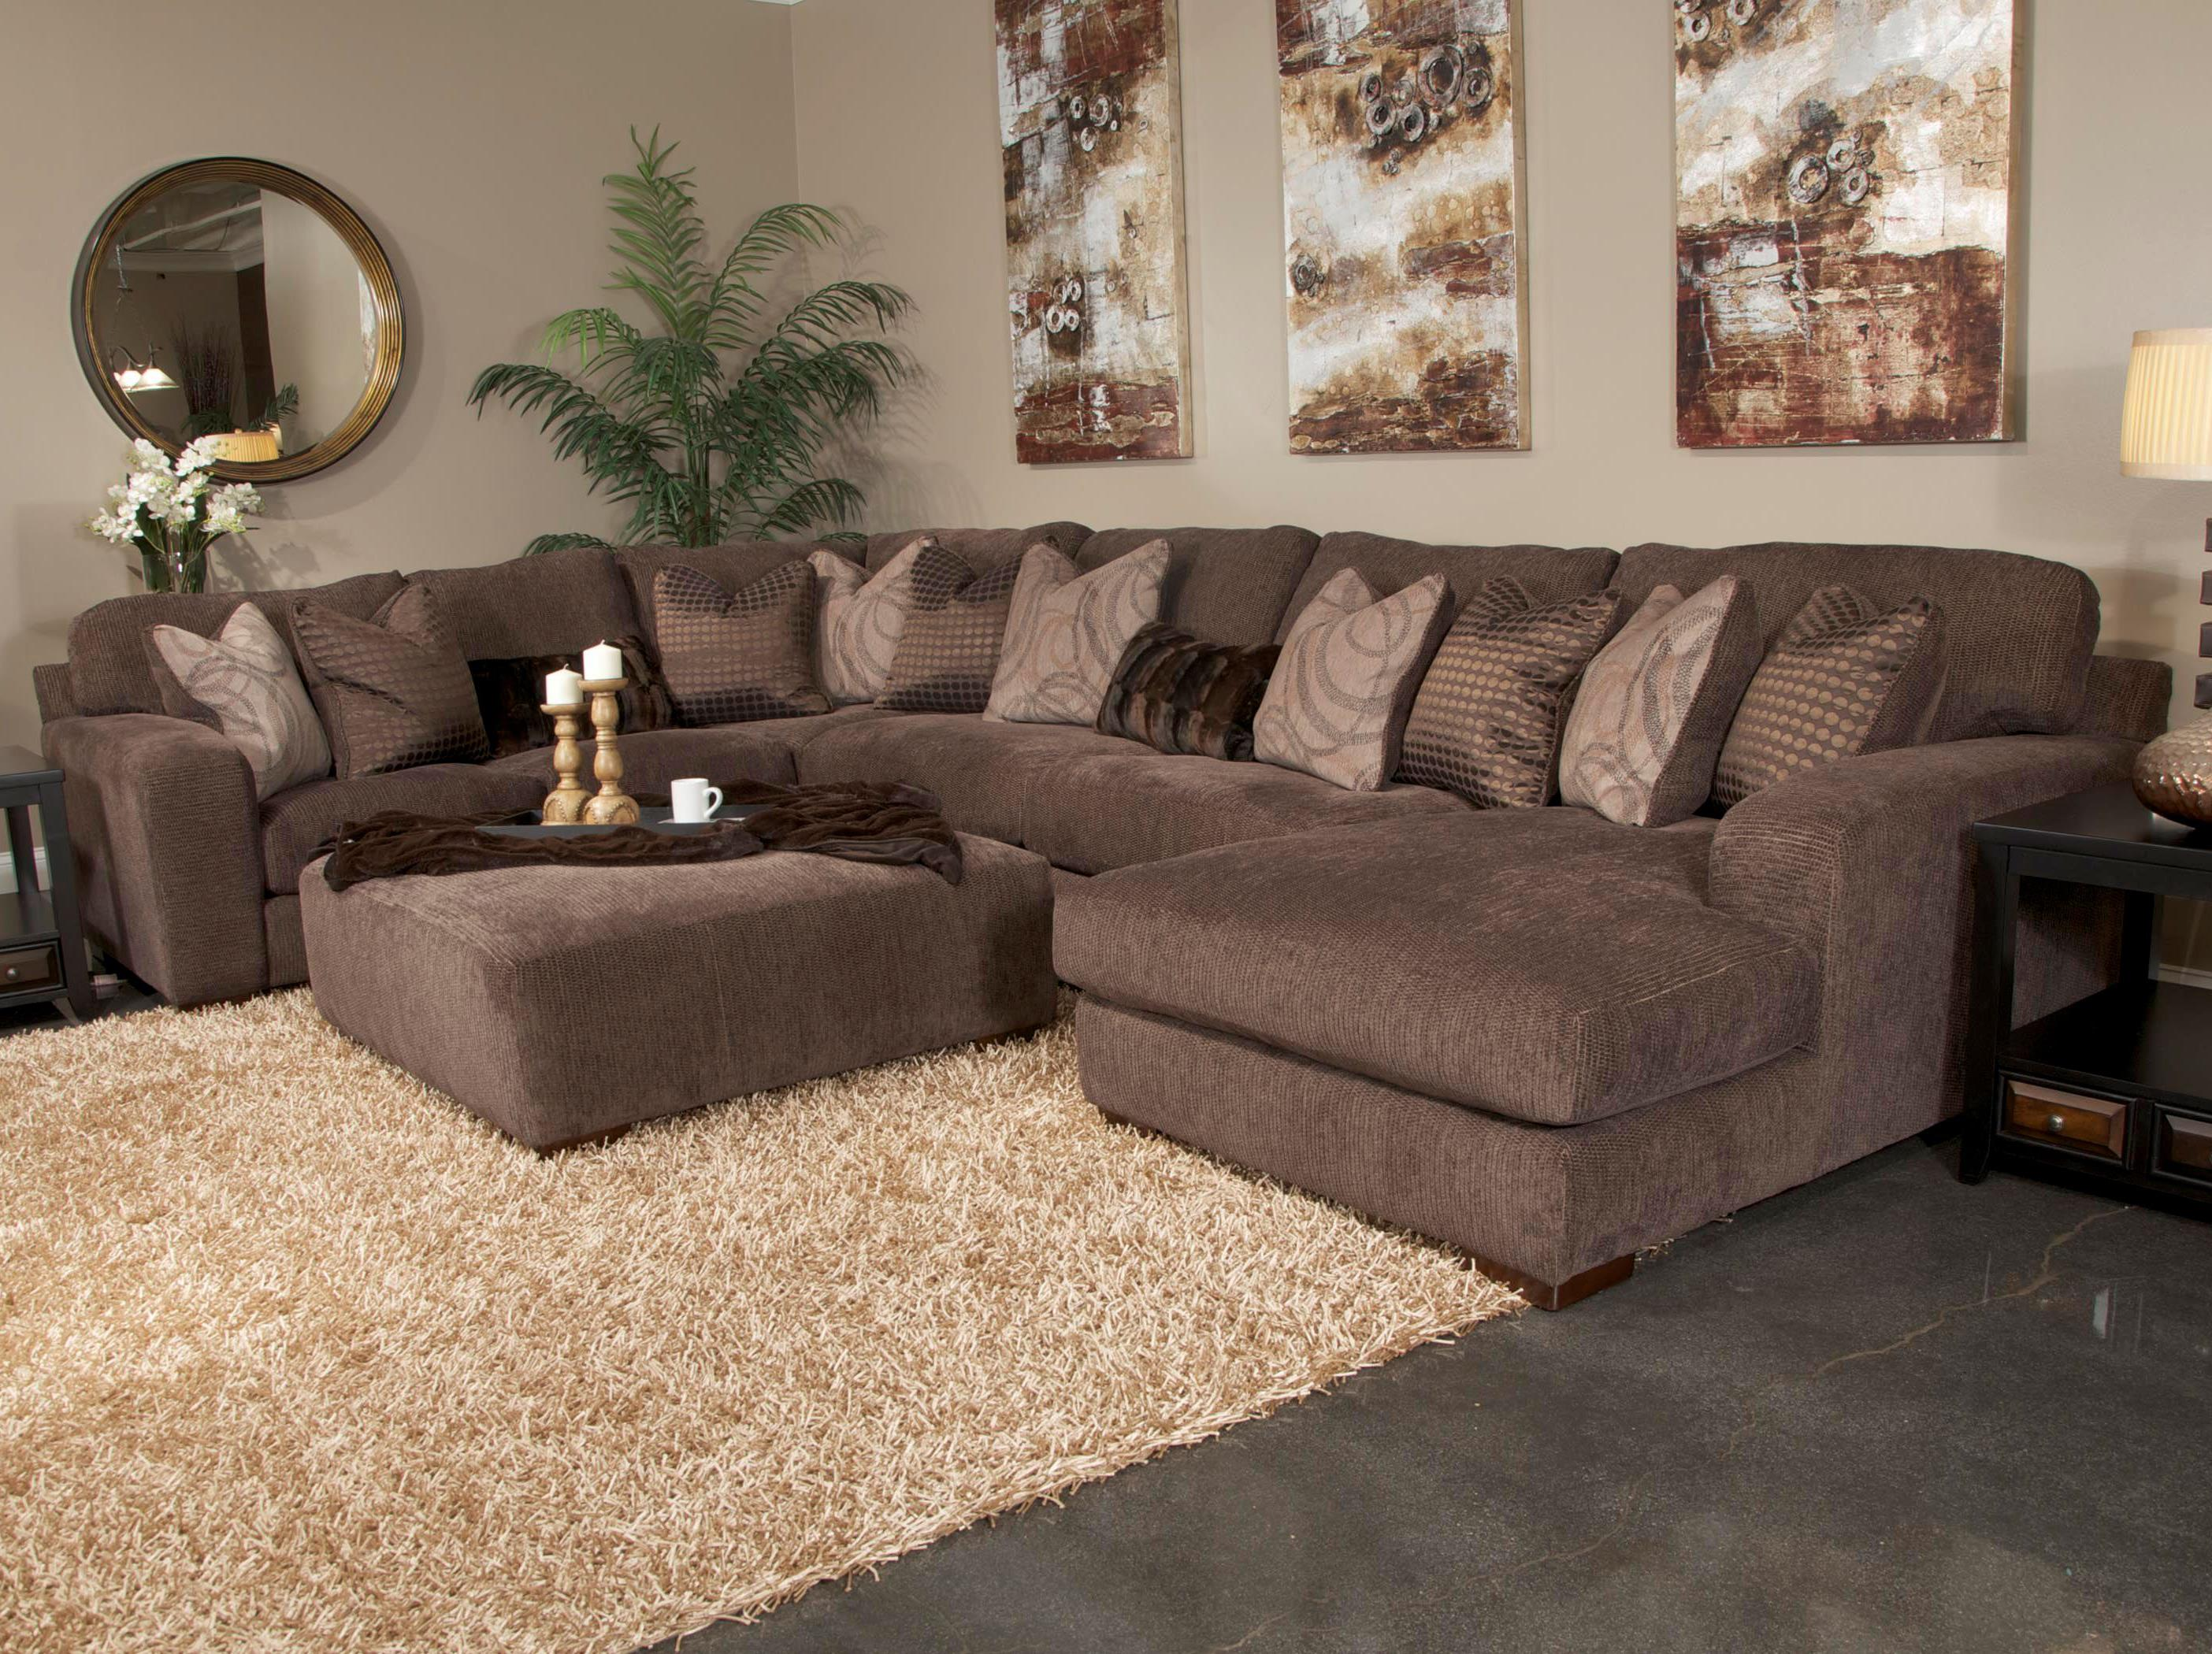 is design room modern sectional a leather foot your u sofas plus family rest sofa for rectangular unique cream comforter colored there shape carpet concept comfortable